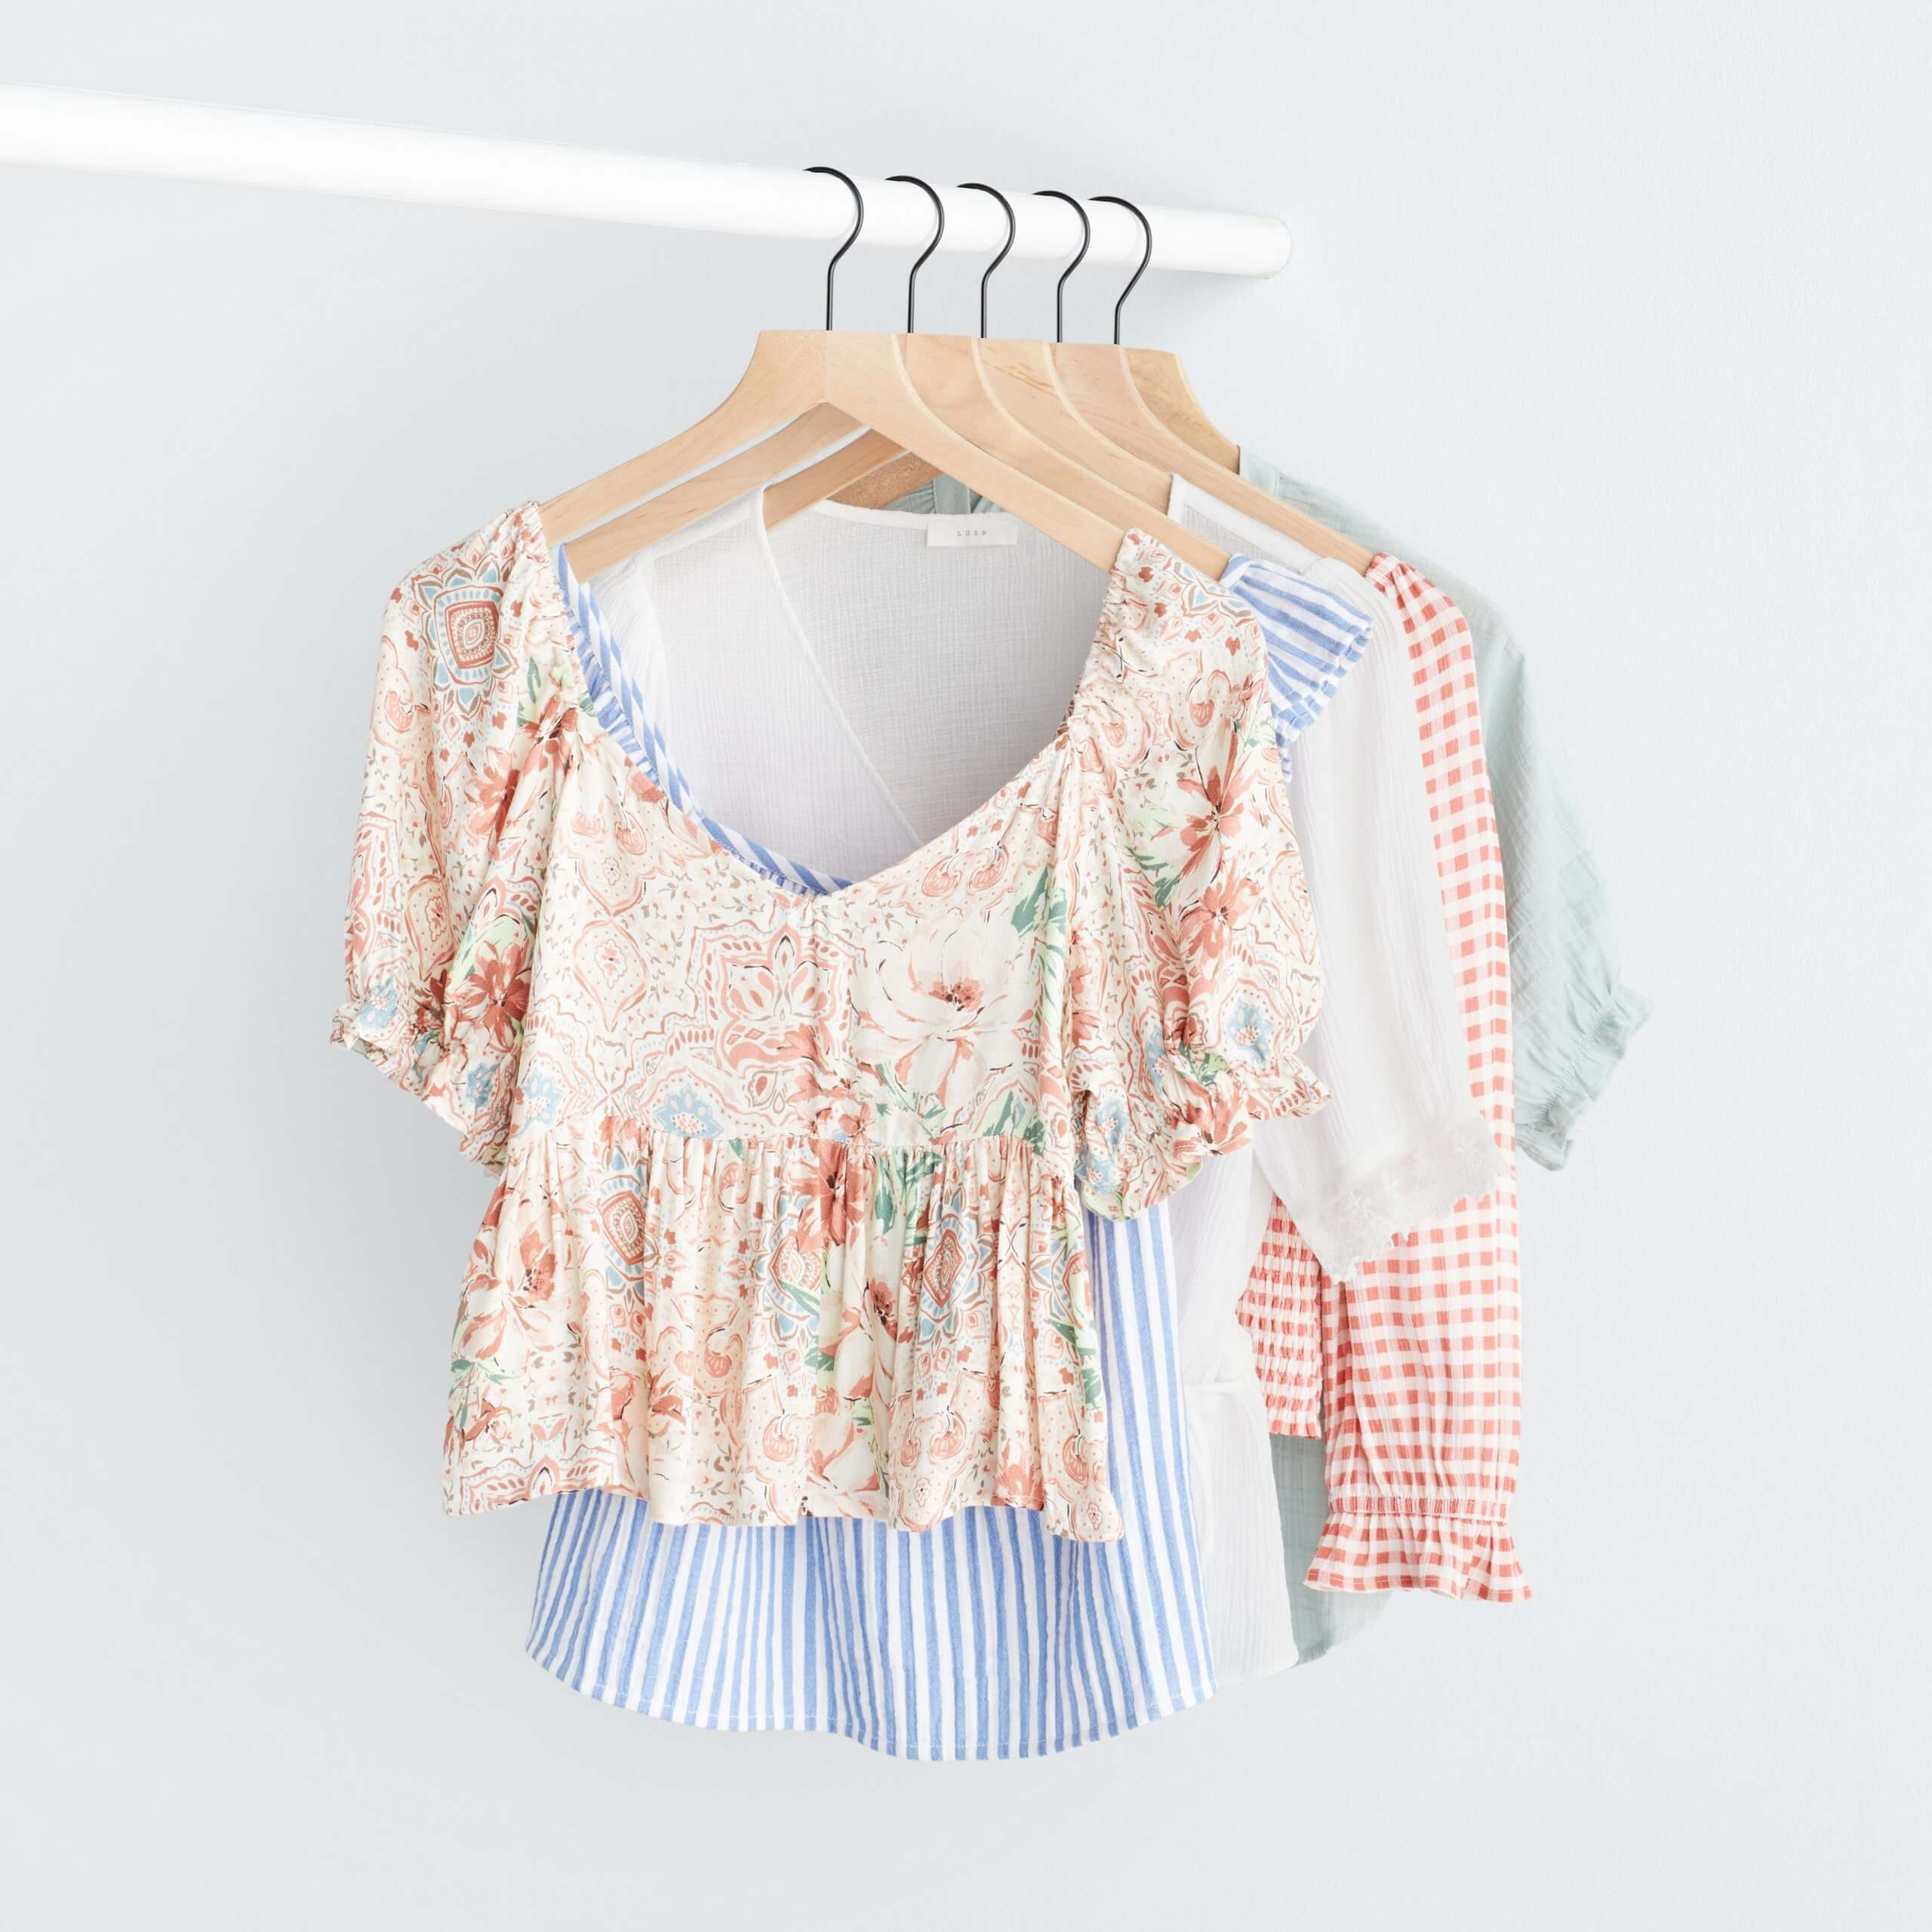 Stitch Fix Women's rack image with white peplum top with pink florals, blue and white striped ruffle tank, white peplum top, pink and white gingham top and green ruffle sleeve top hanging on white pole.